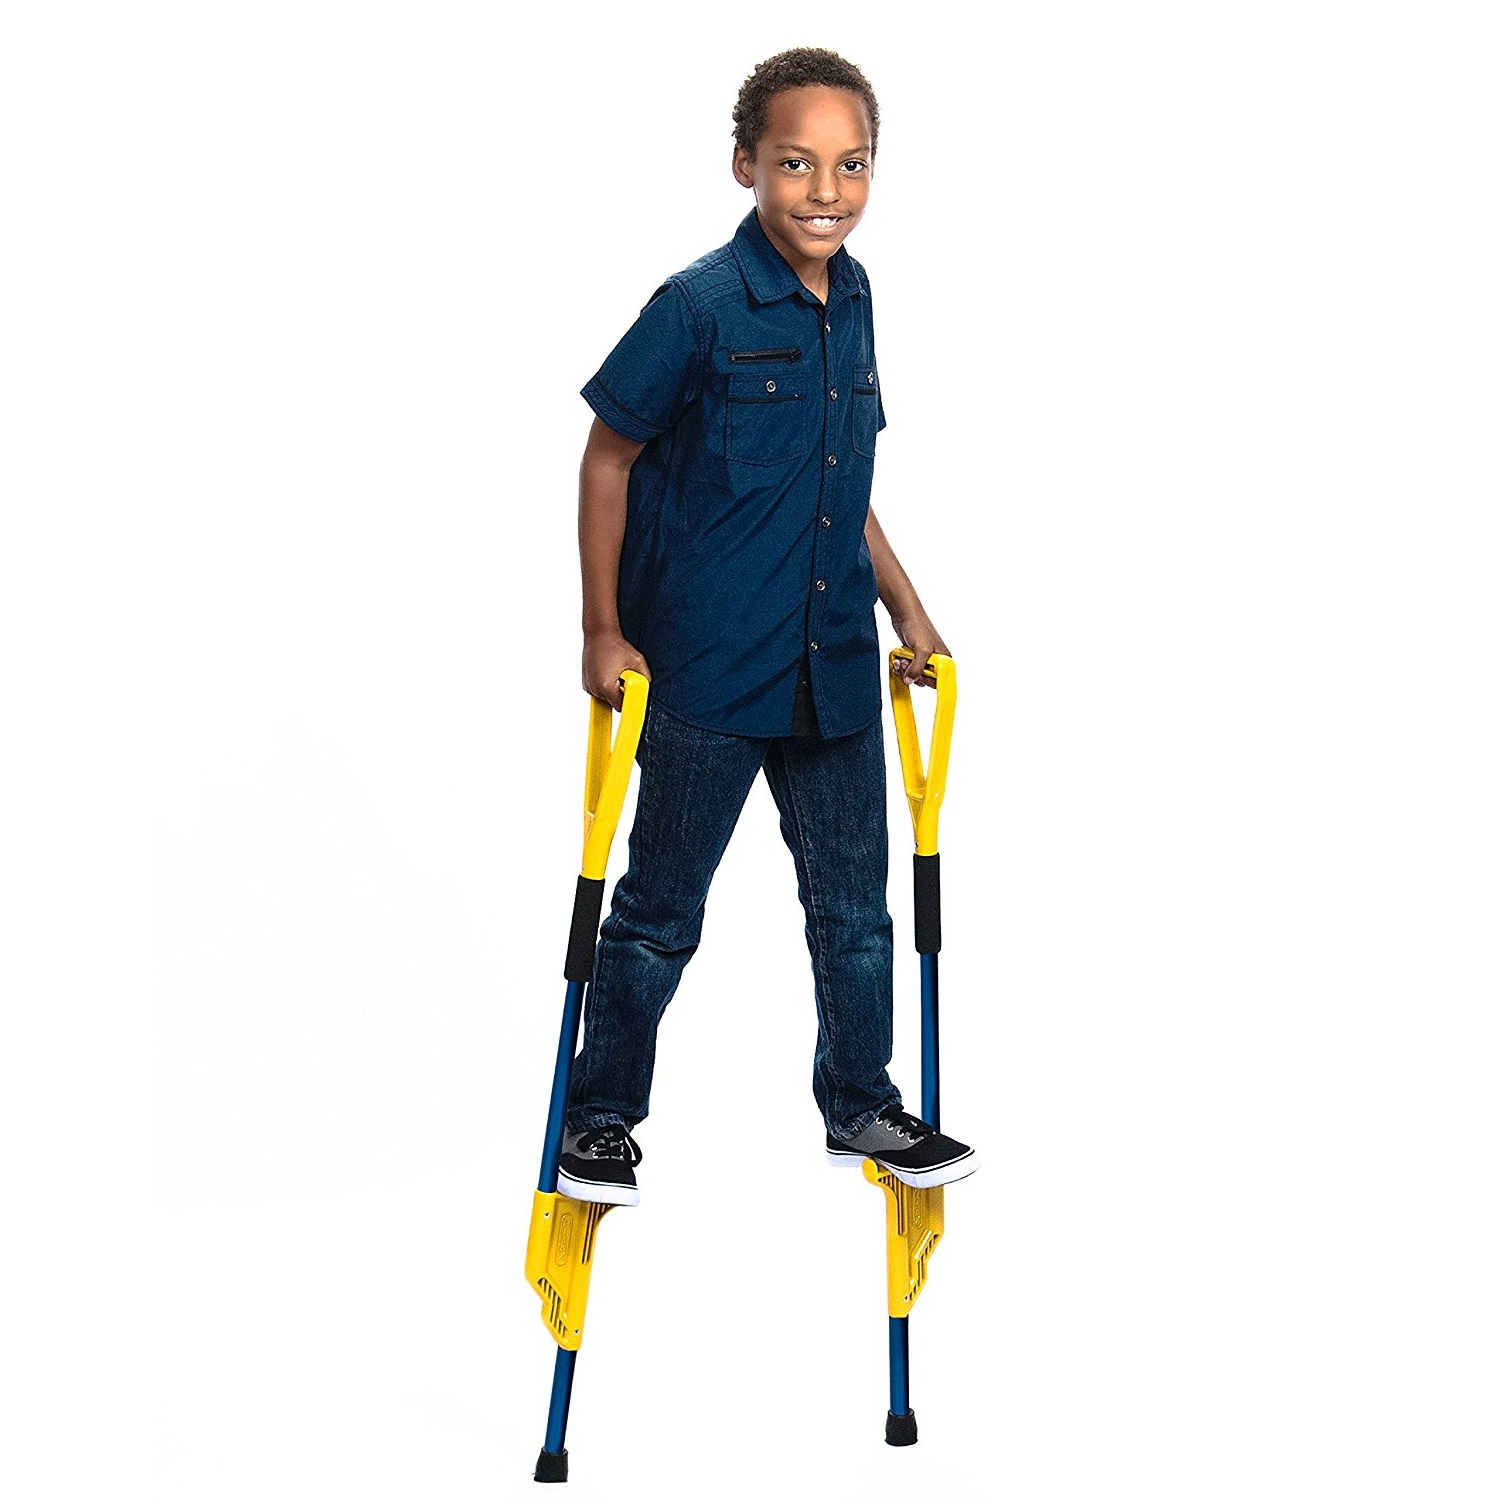 Extex Hijax Junior Size American Stilts